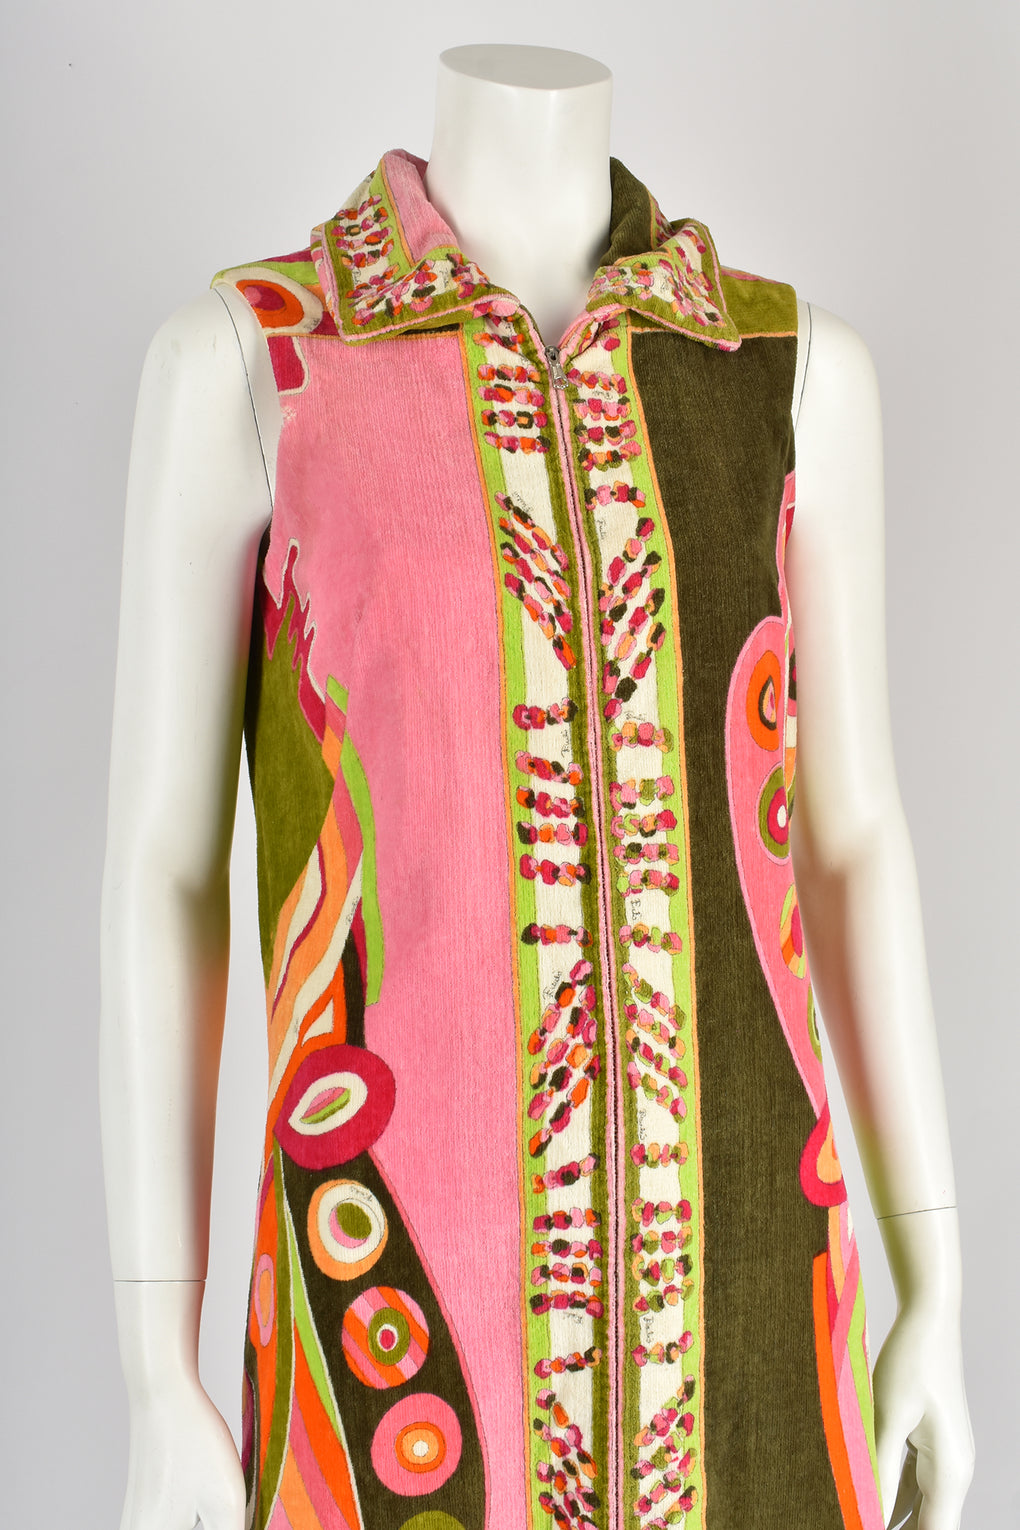 EMILIO PUCCI print sleeveless towelled zip up dress